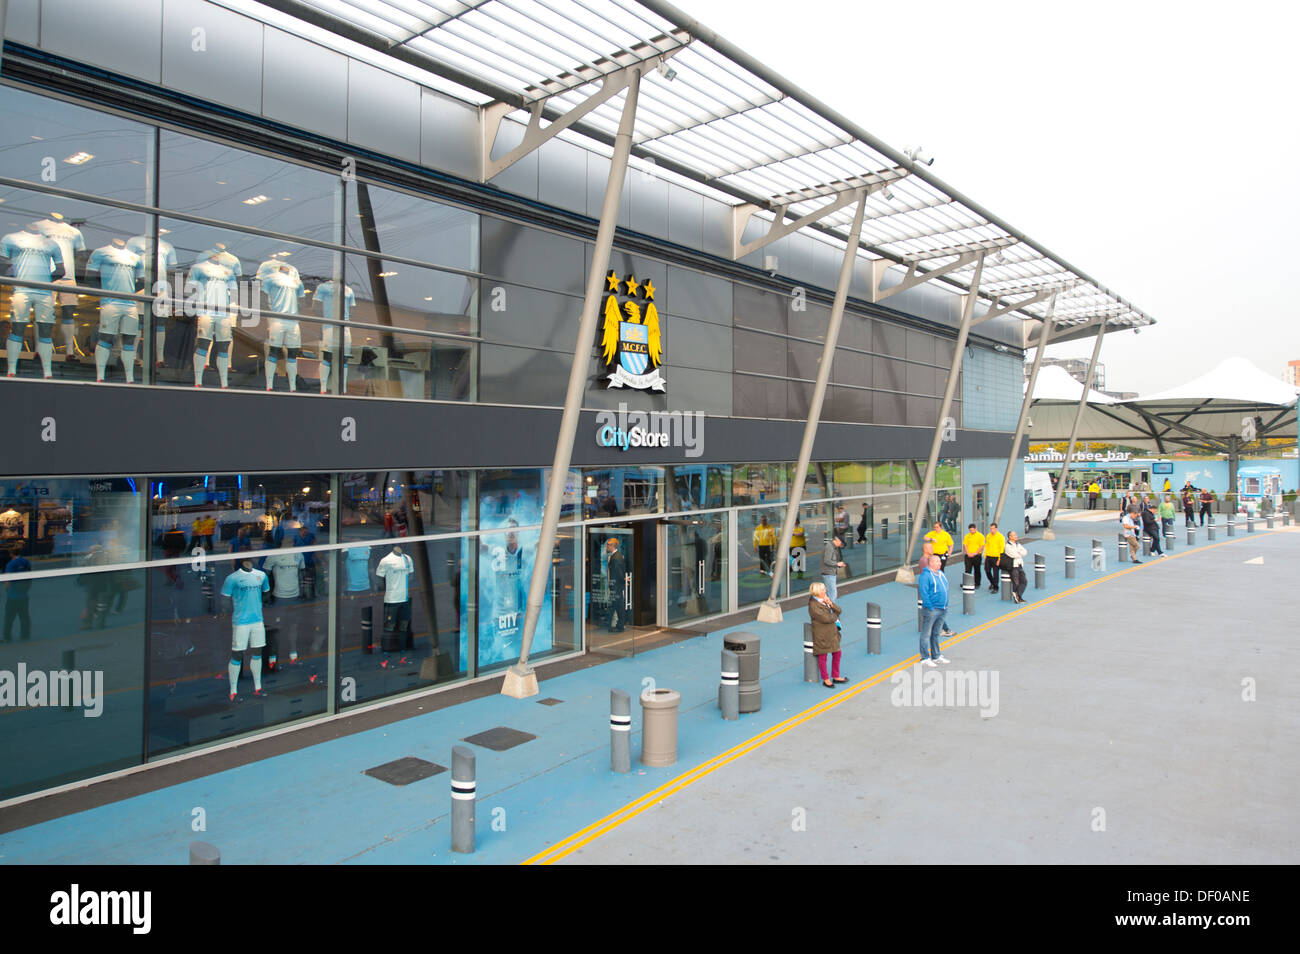 The CityStore merchandising store at the Etihad Stadium, home of Manchester City Football Club (Editorial use only). Stock Photo